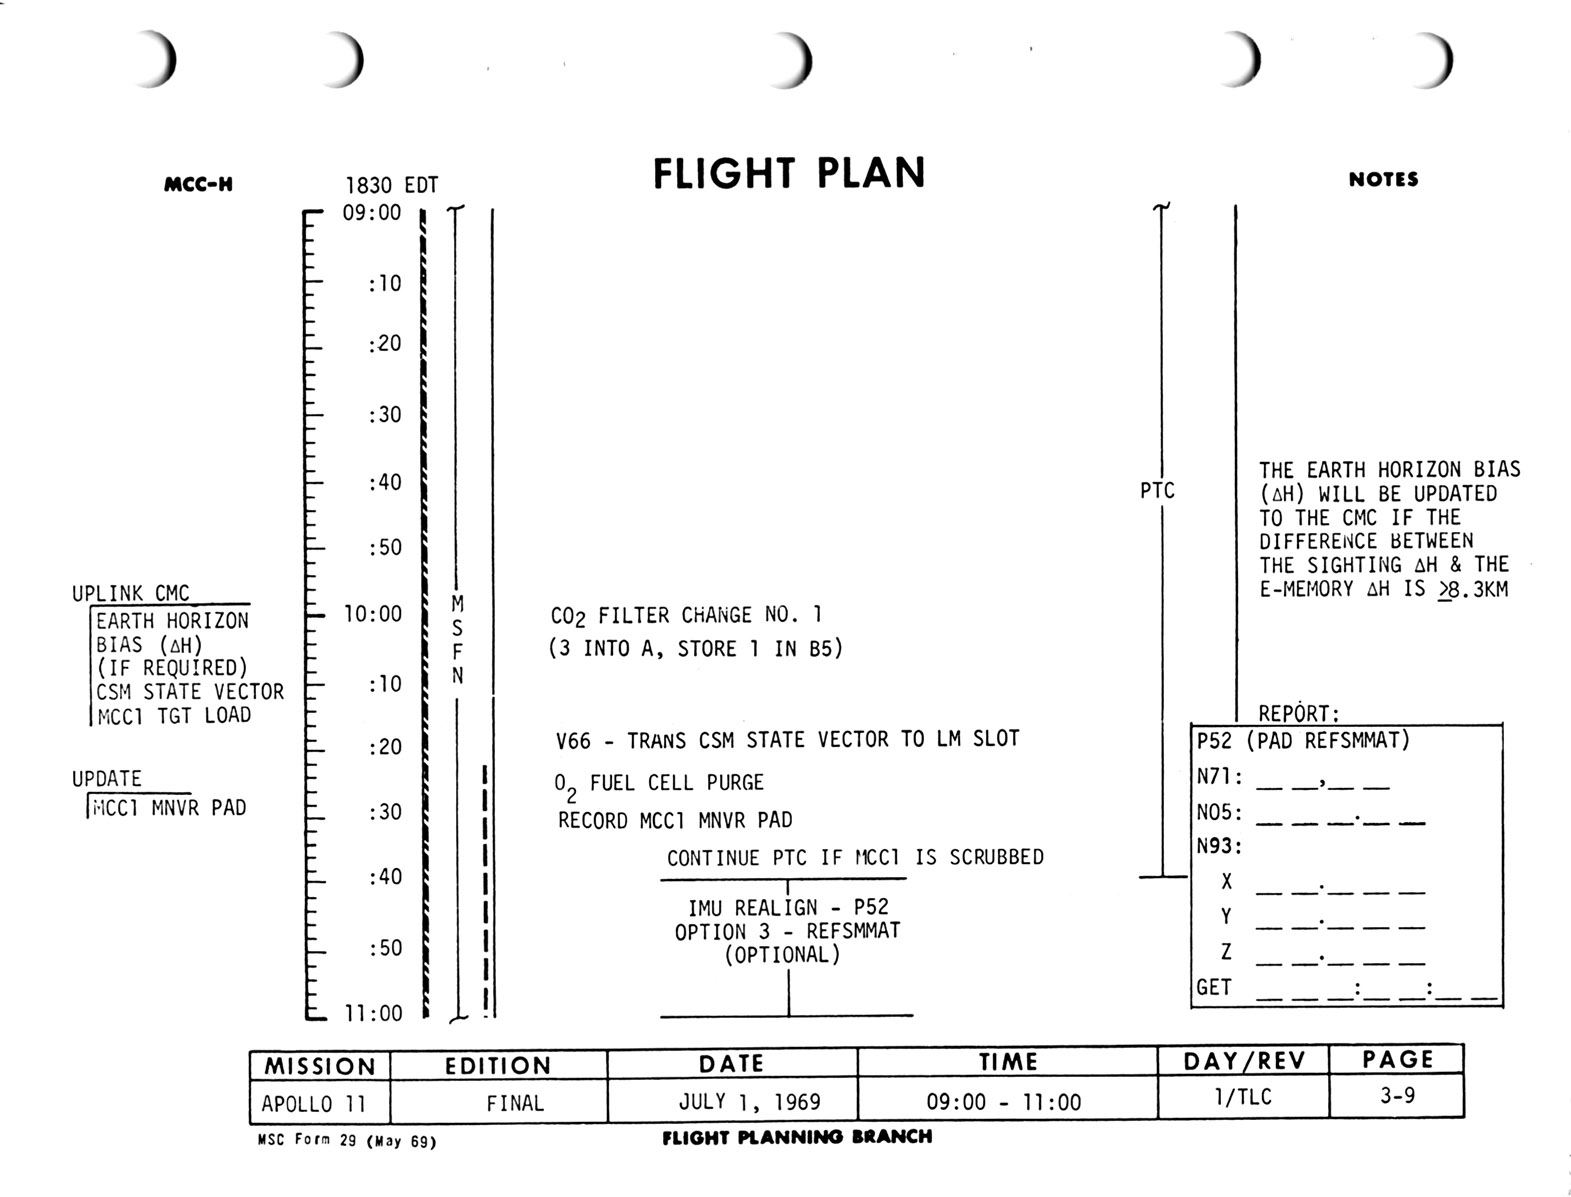 Apollo 11 Flight Journal - Day 1, part 4: Navigation and